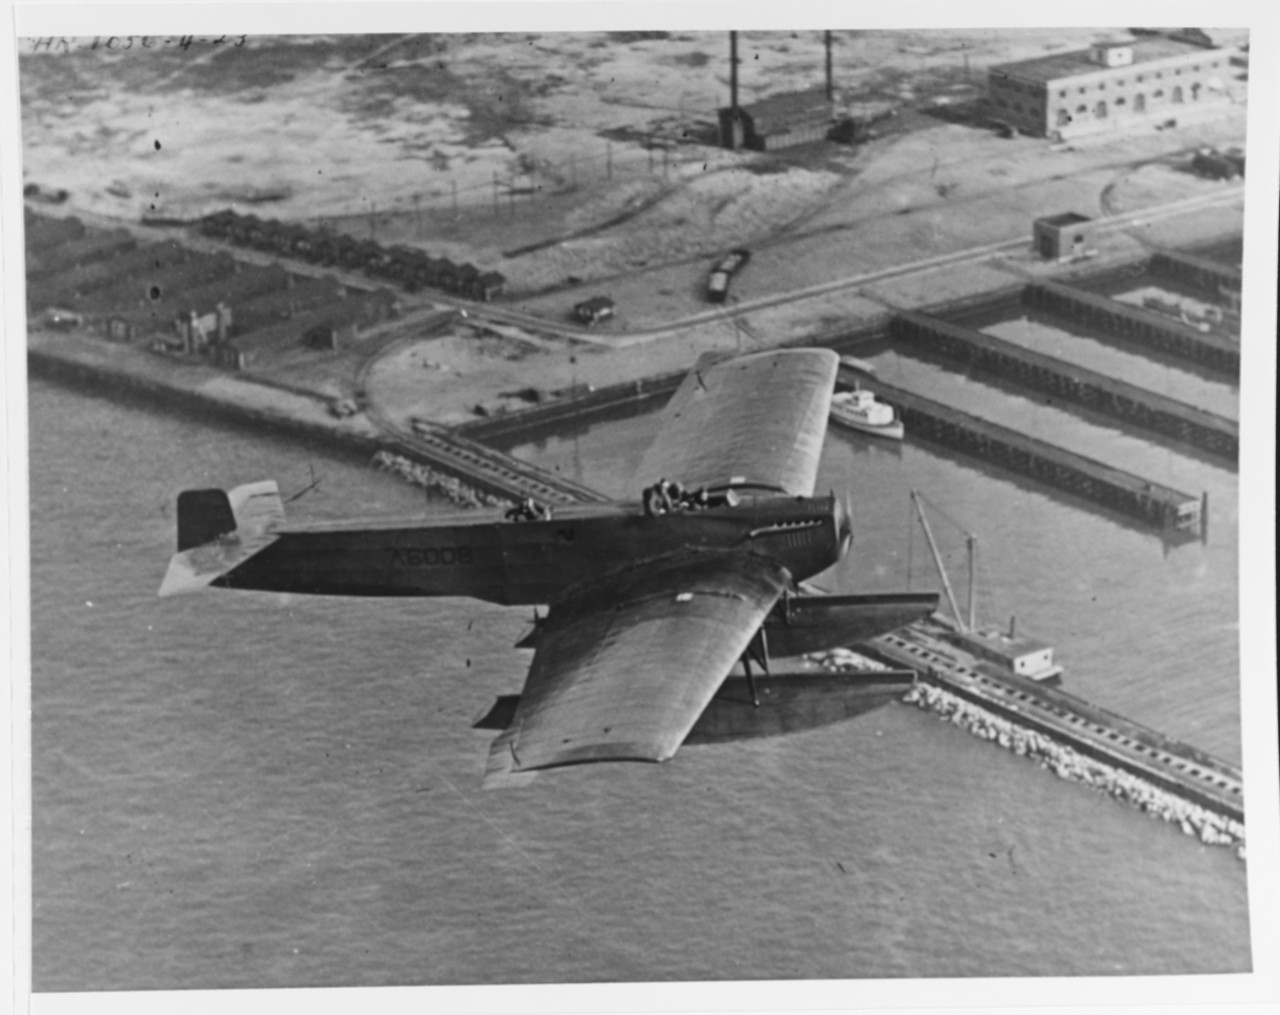 Fokker FT-1 torpedo aircraft (BuNo A-6008)